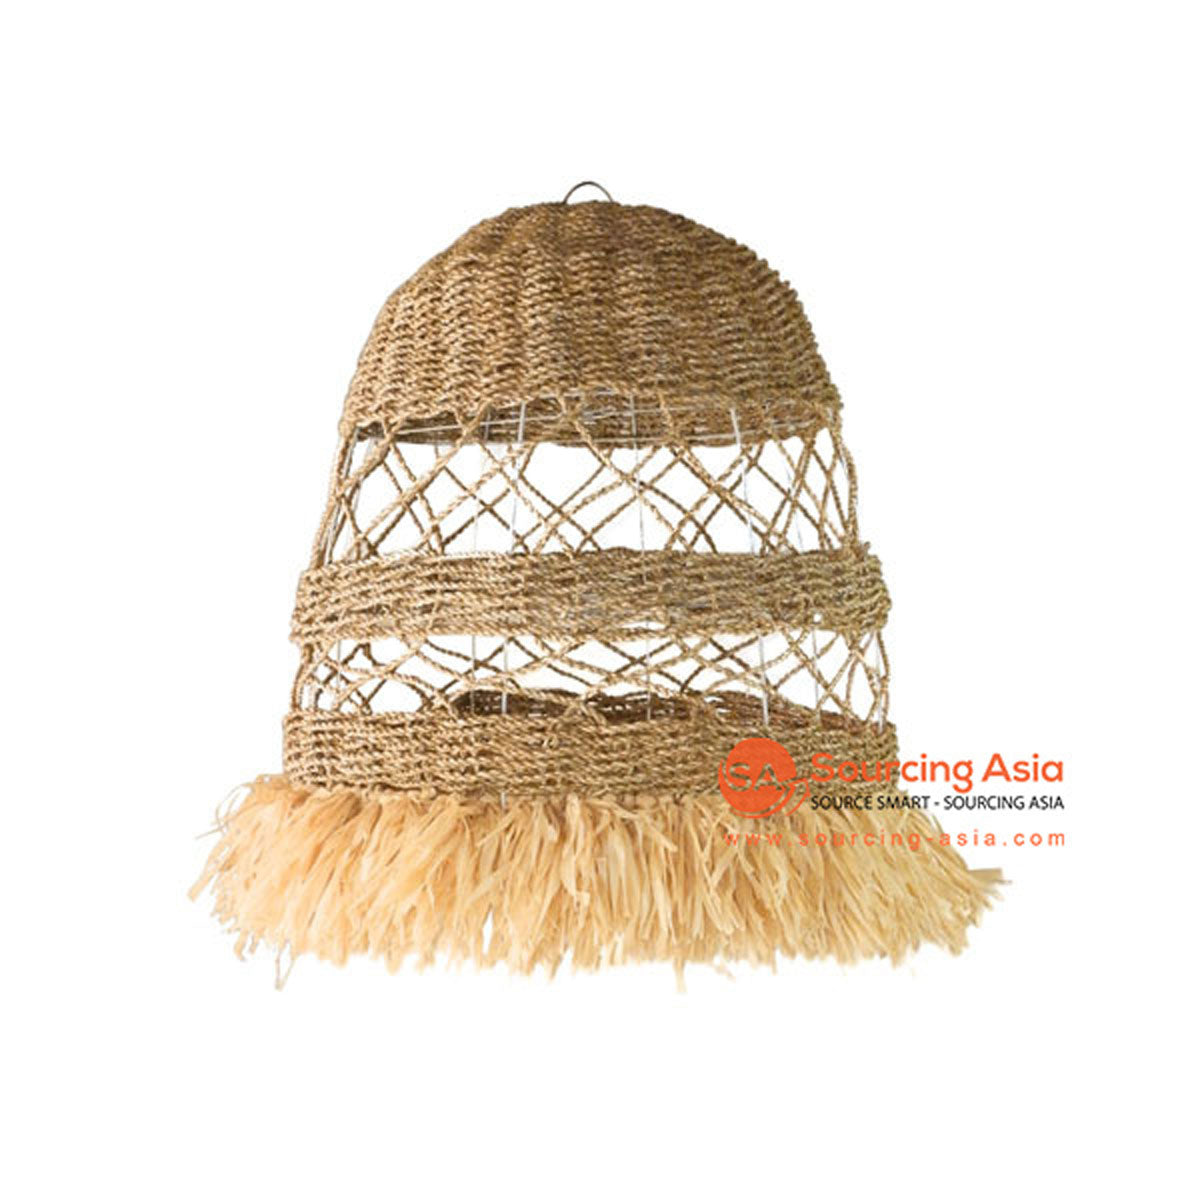 SHL063-9 NATURAL SEA GRASS PENDANT LAMP WITH FRINGE